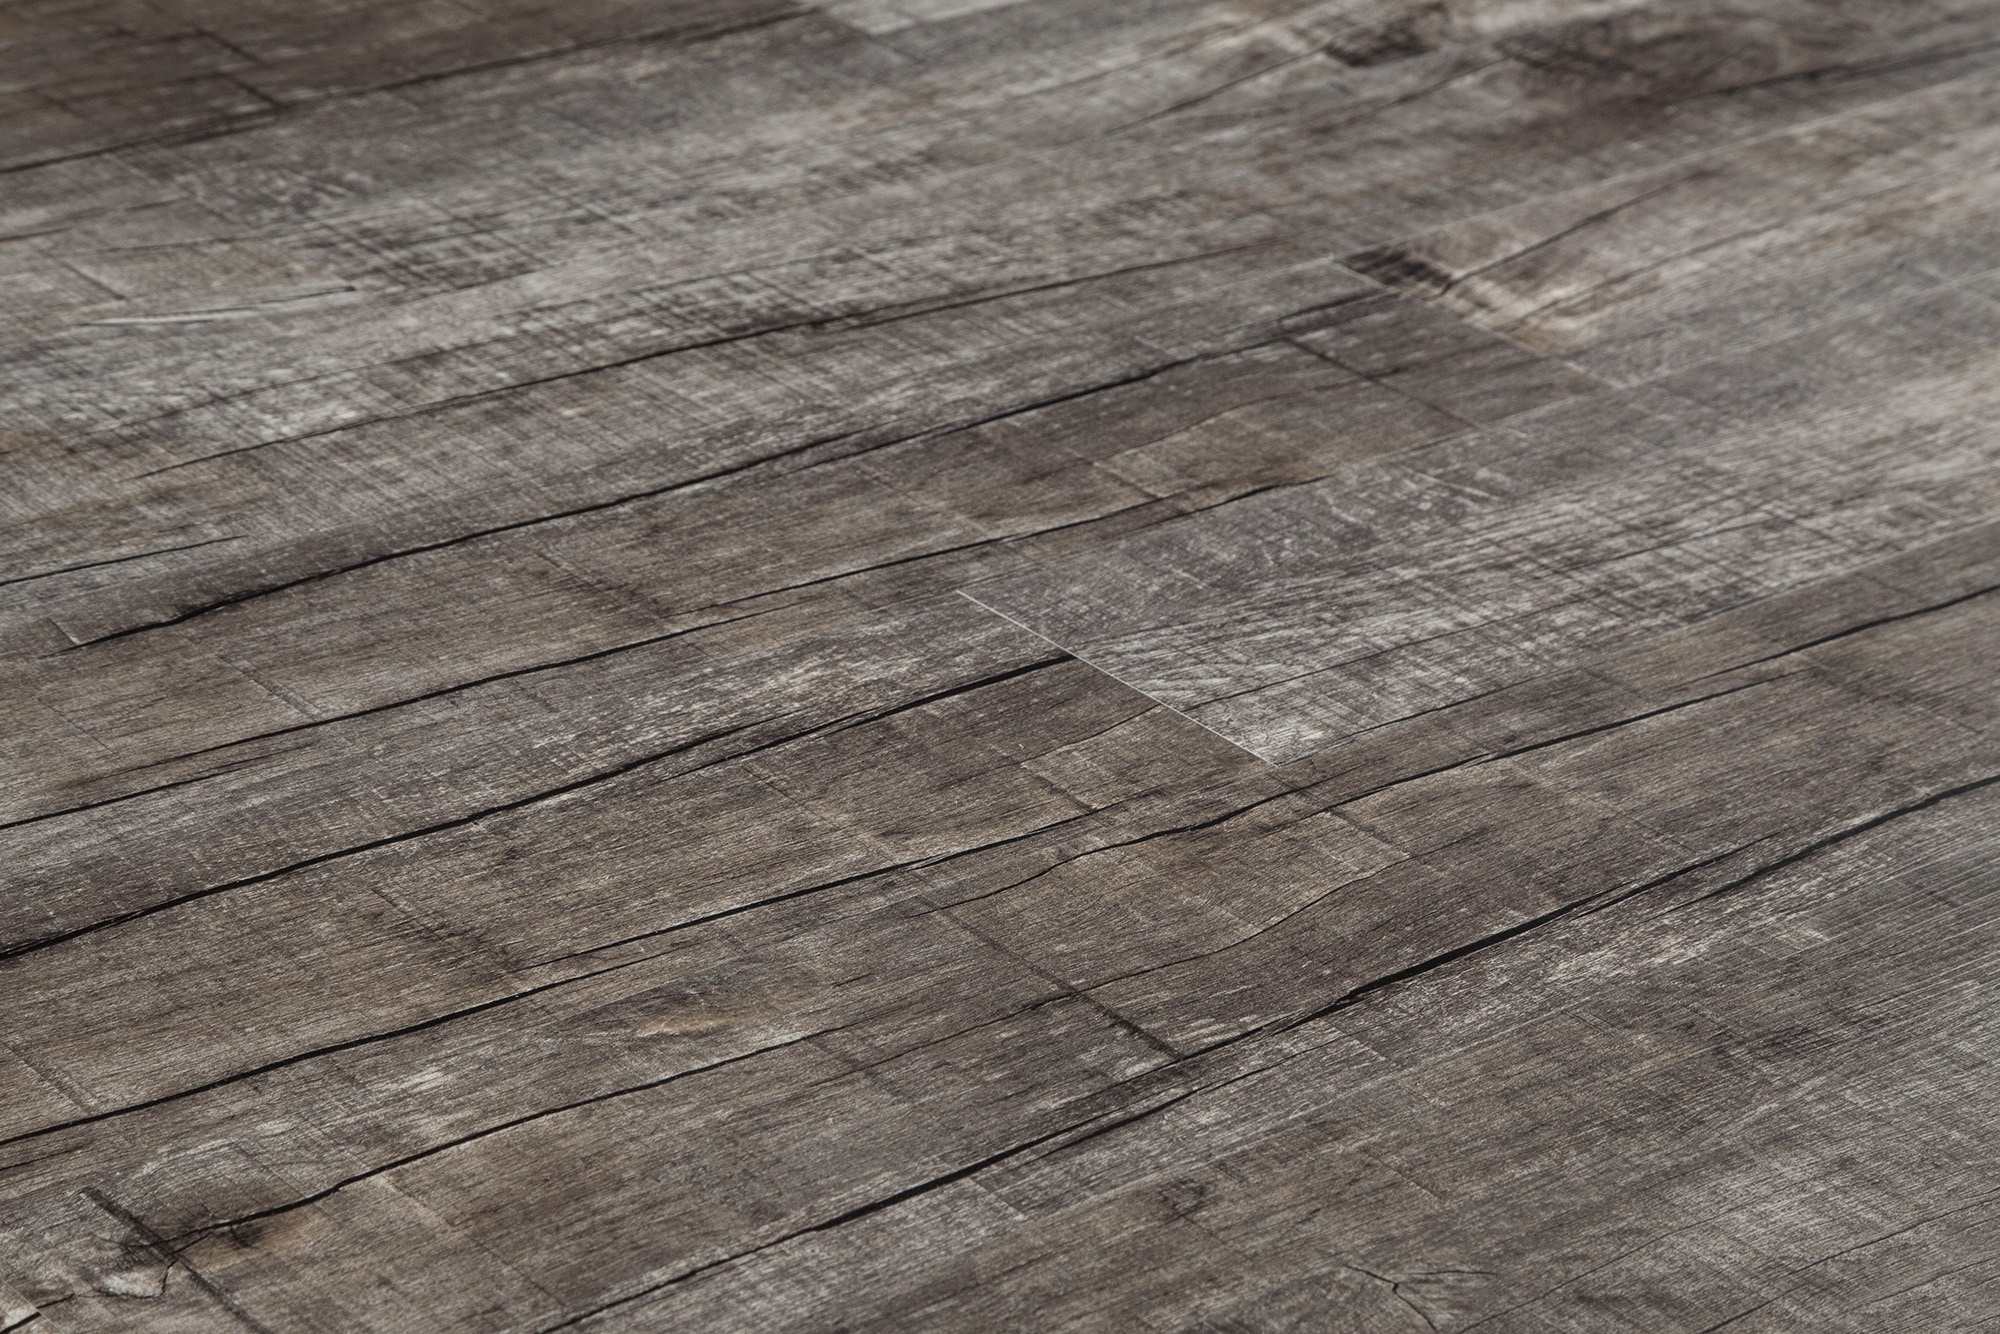 free samples vesdura vinyl planks 4mm pvc click lock distressed collection dark chocolate - Wood Vinyl Flooring